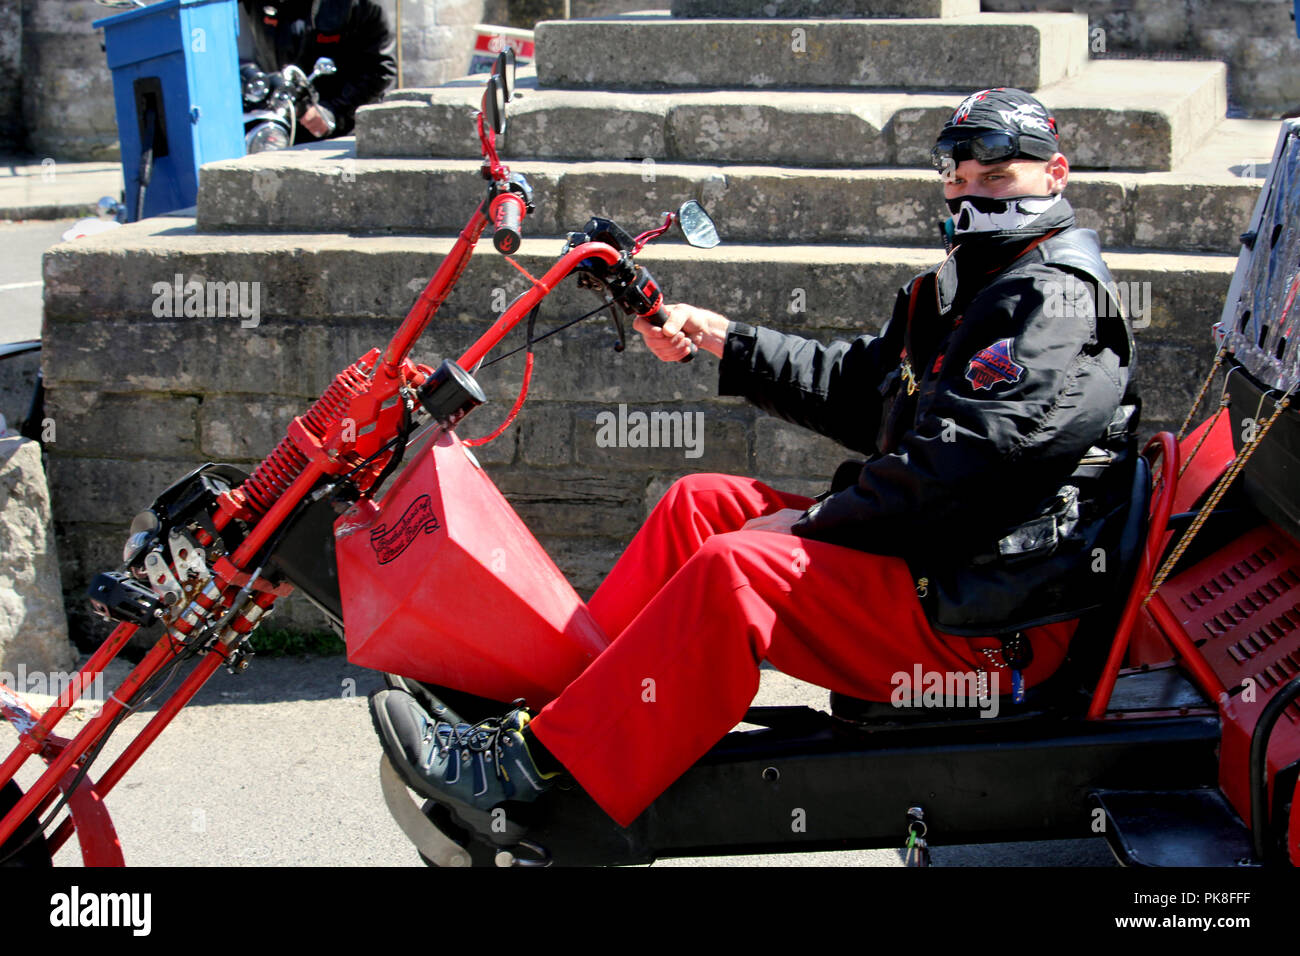 Corfe, England - June 03 2018: Mean looking biker on a chopper trike motorcycle, wearing black and red, with bandanas covering his head and face - Stock Image